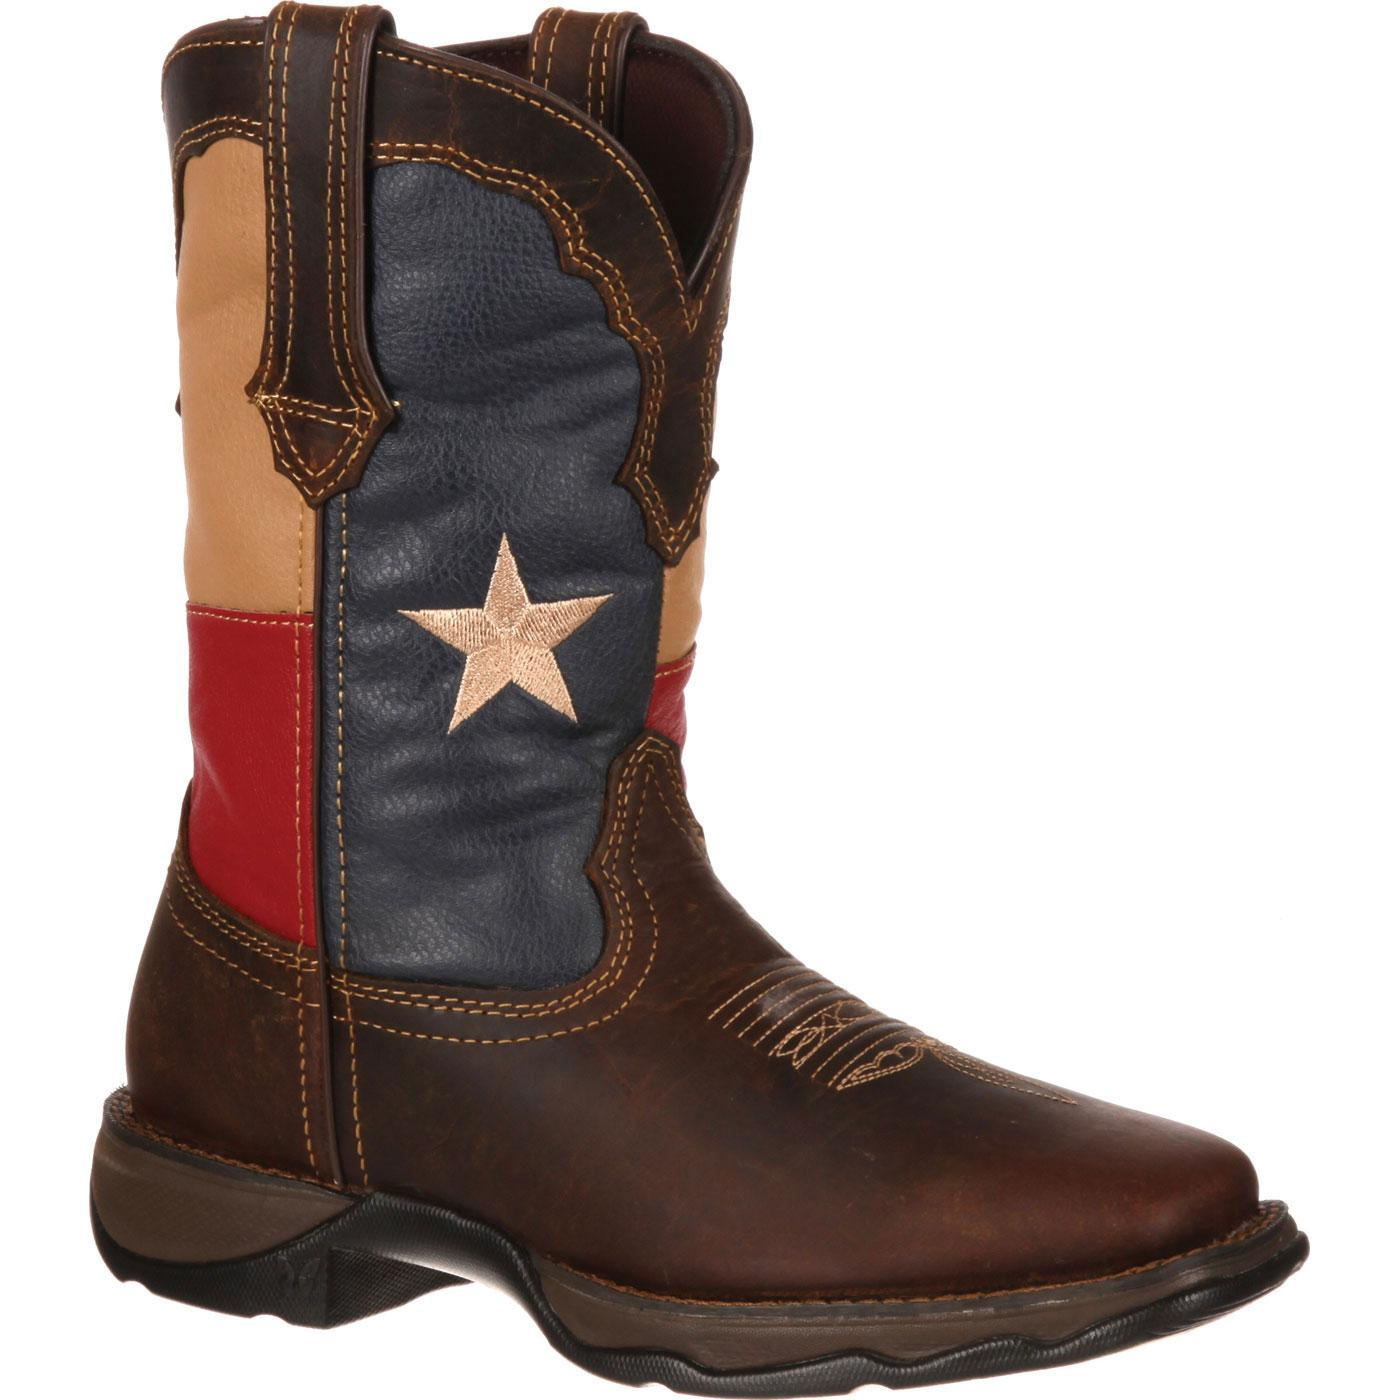 cc1c99d79d5 Lady Rebel by Durango Texas Flag Pull-On Western Boot